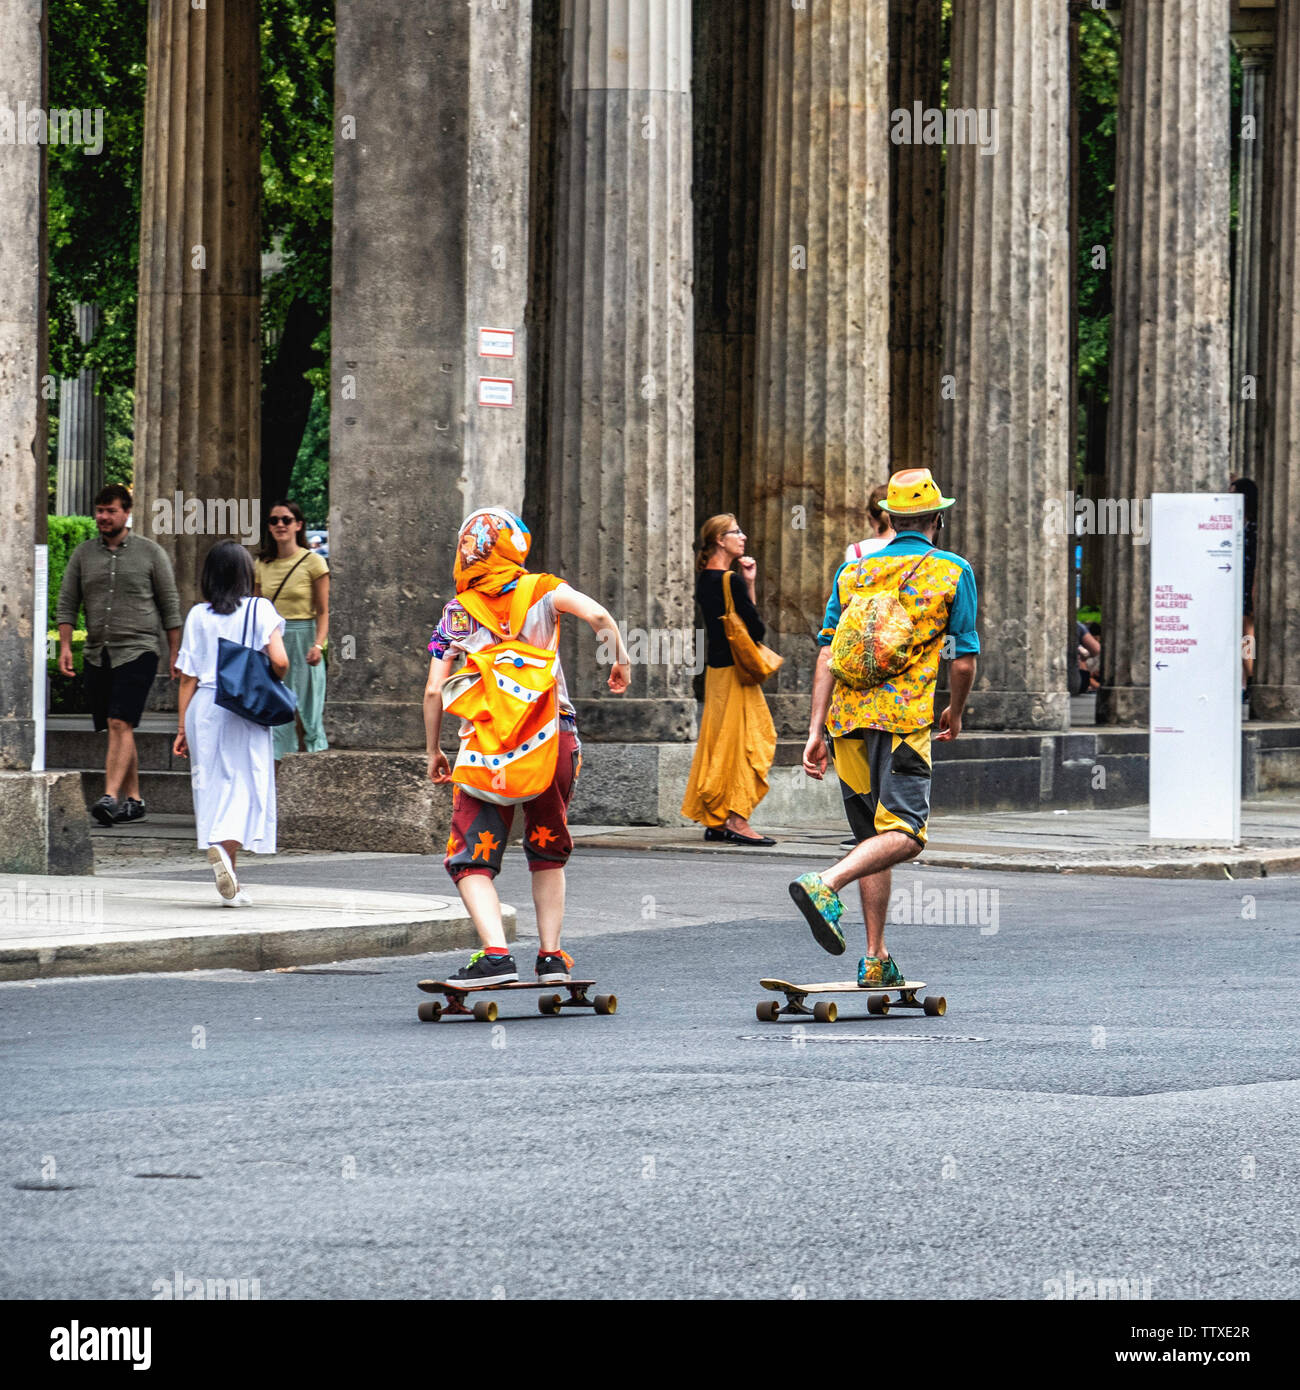 Young tourists in colourful clothing enjoying Summer, Museum Island, Mitte,Berlin. Two skate boarders - Stock Image